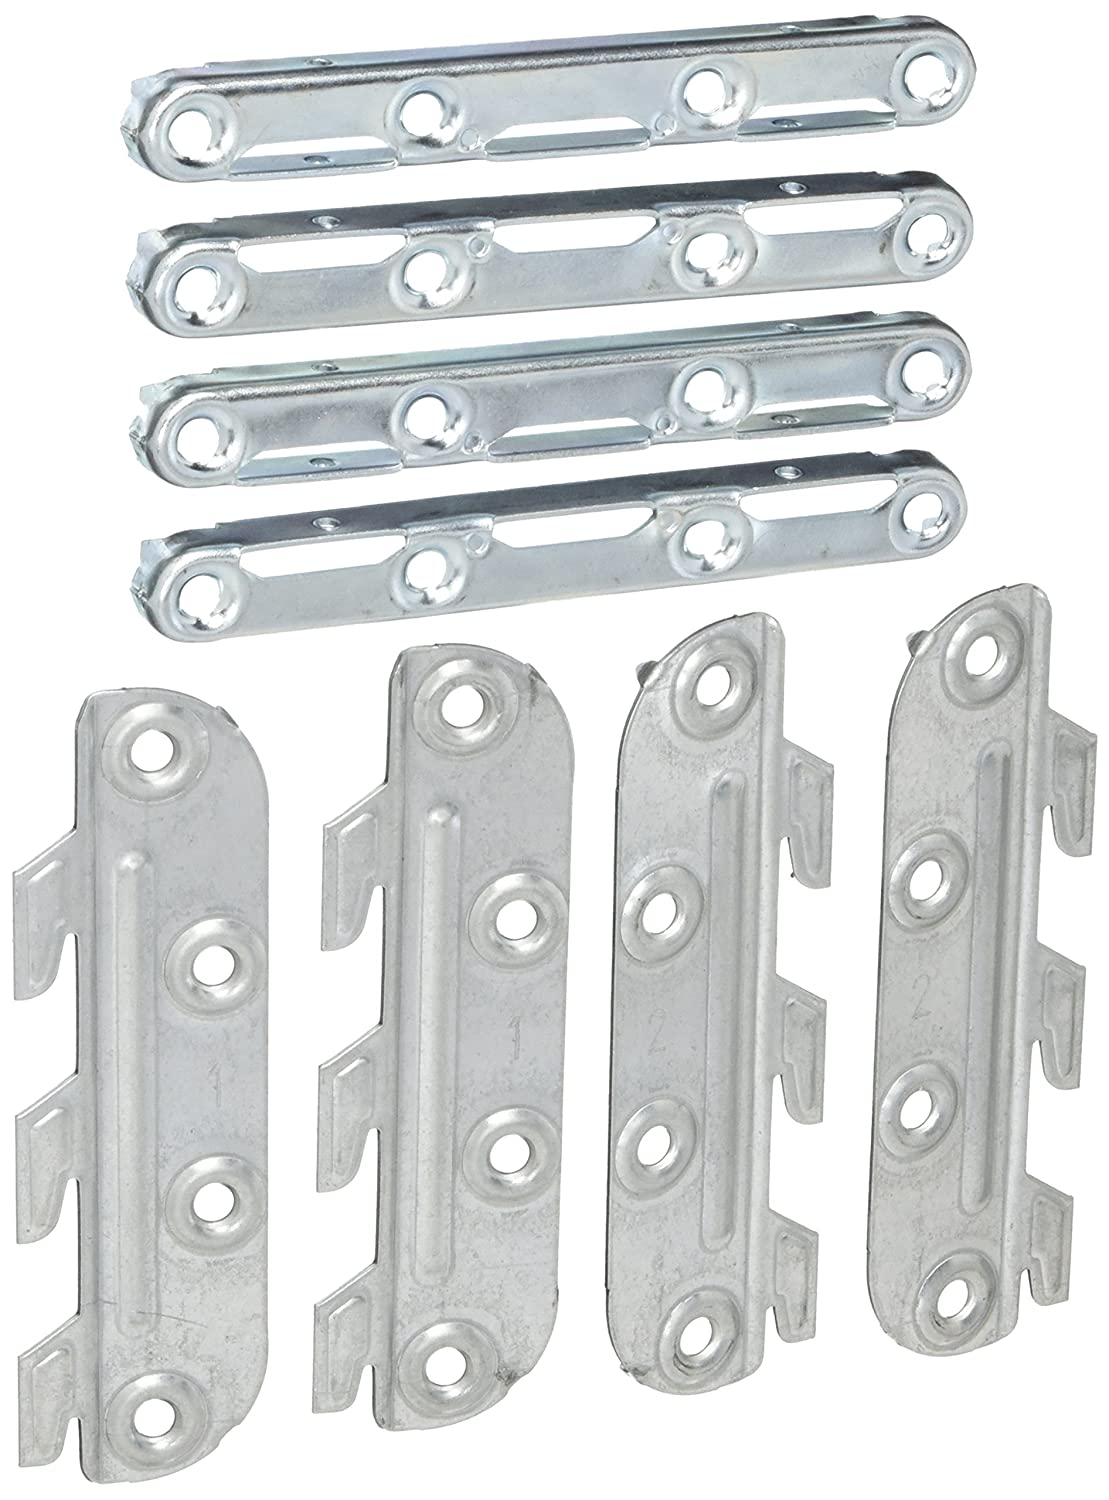 Galvanized Steel Bed Rail Fasteners Tools Supply